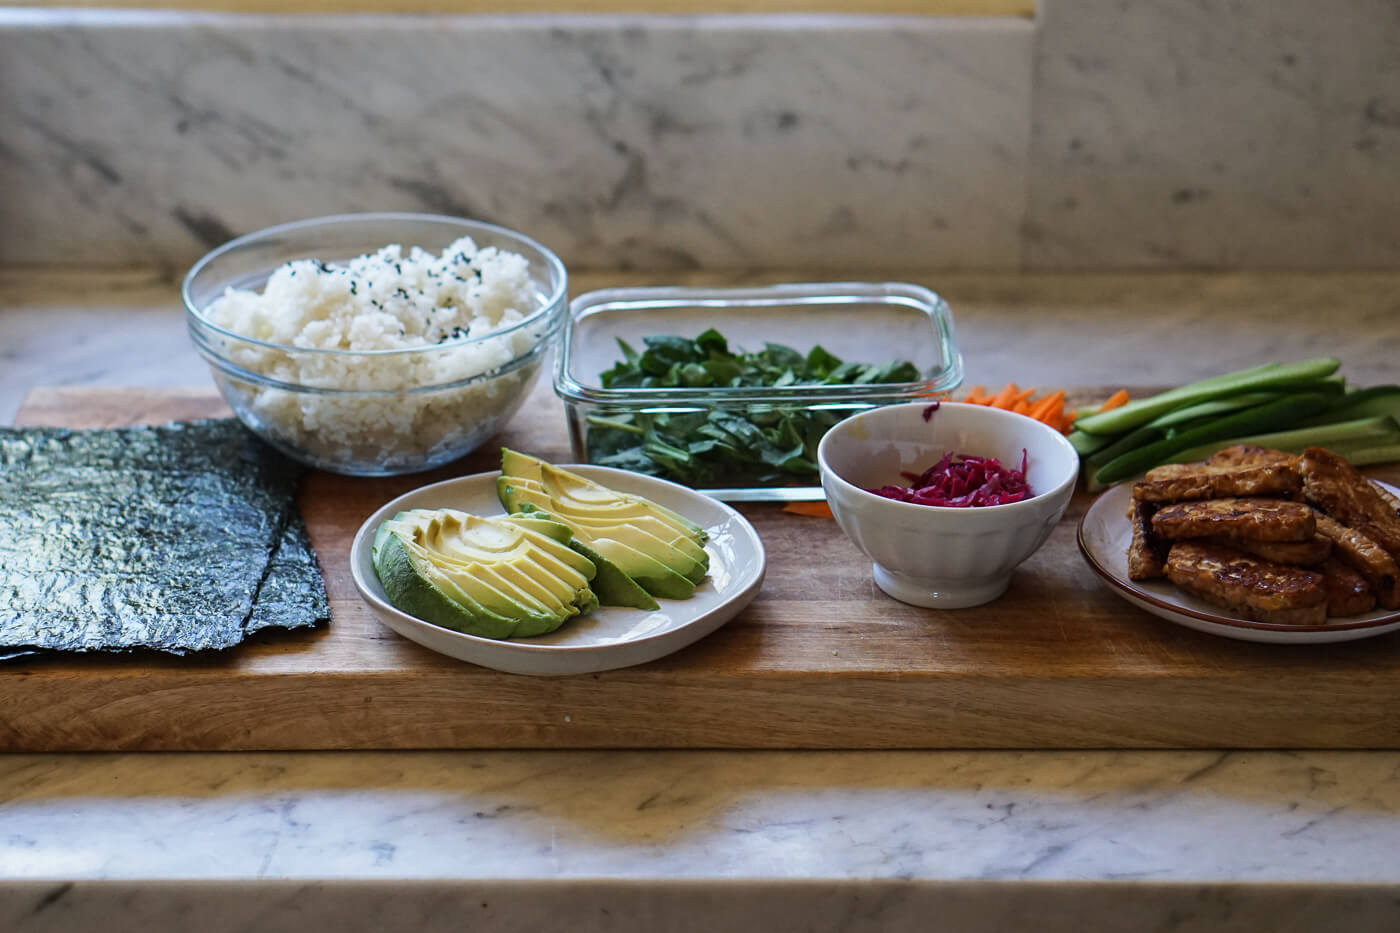 The ingredients for sushi burritos set on a cutting board.